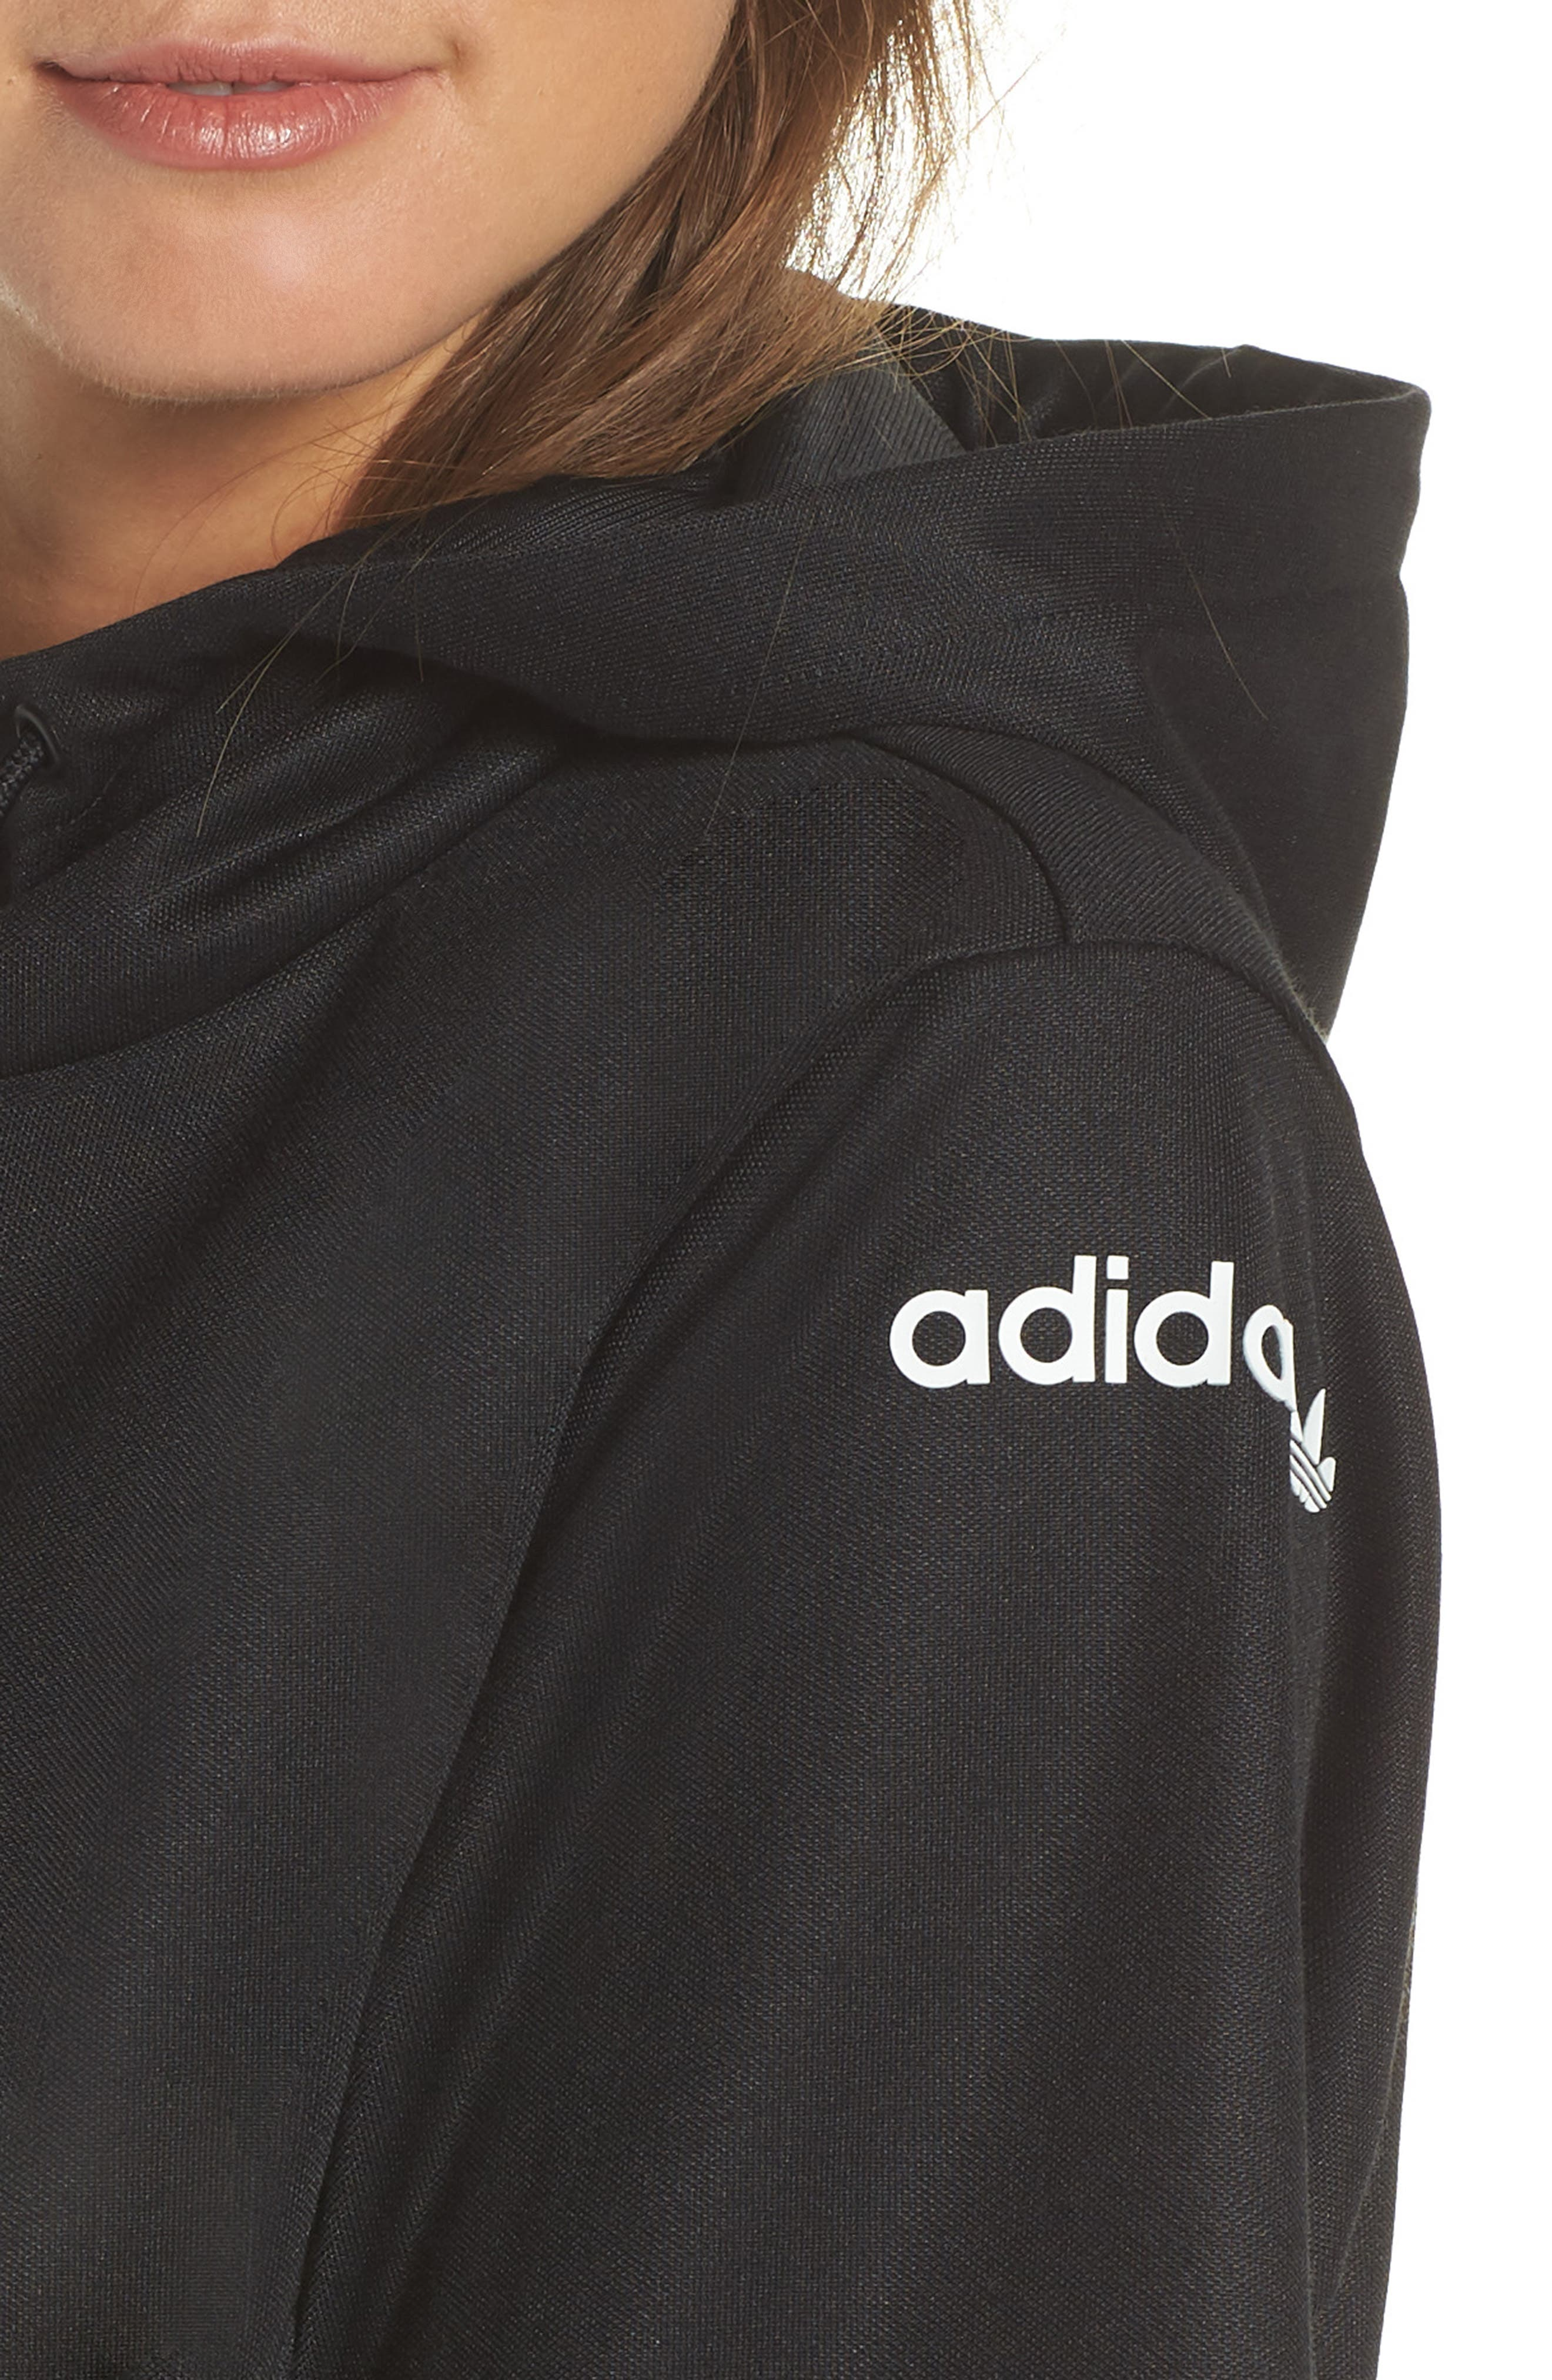 CLRDO Hoodie,                             Alternate thumbnail 4, color,                             001